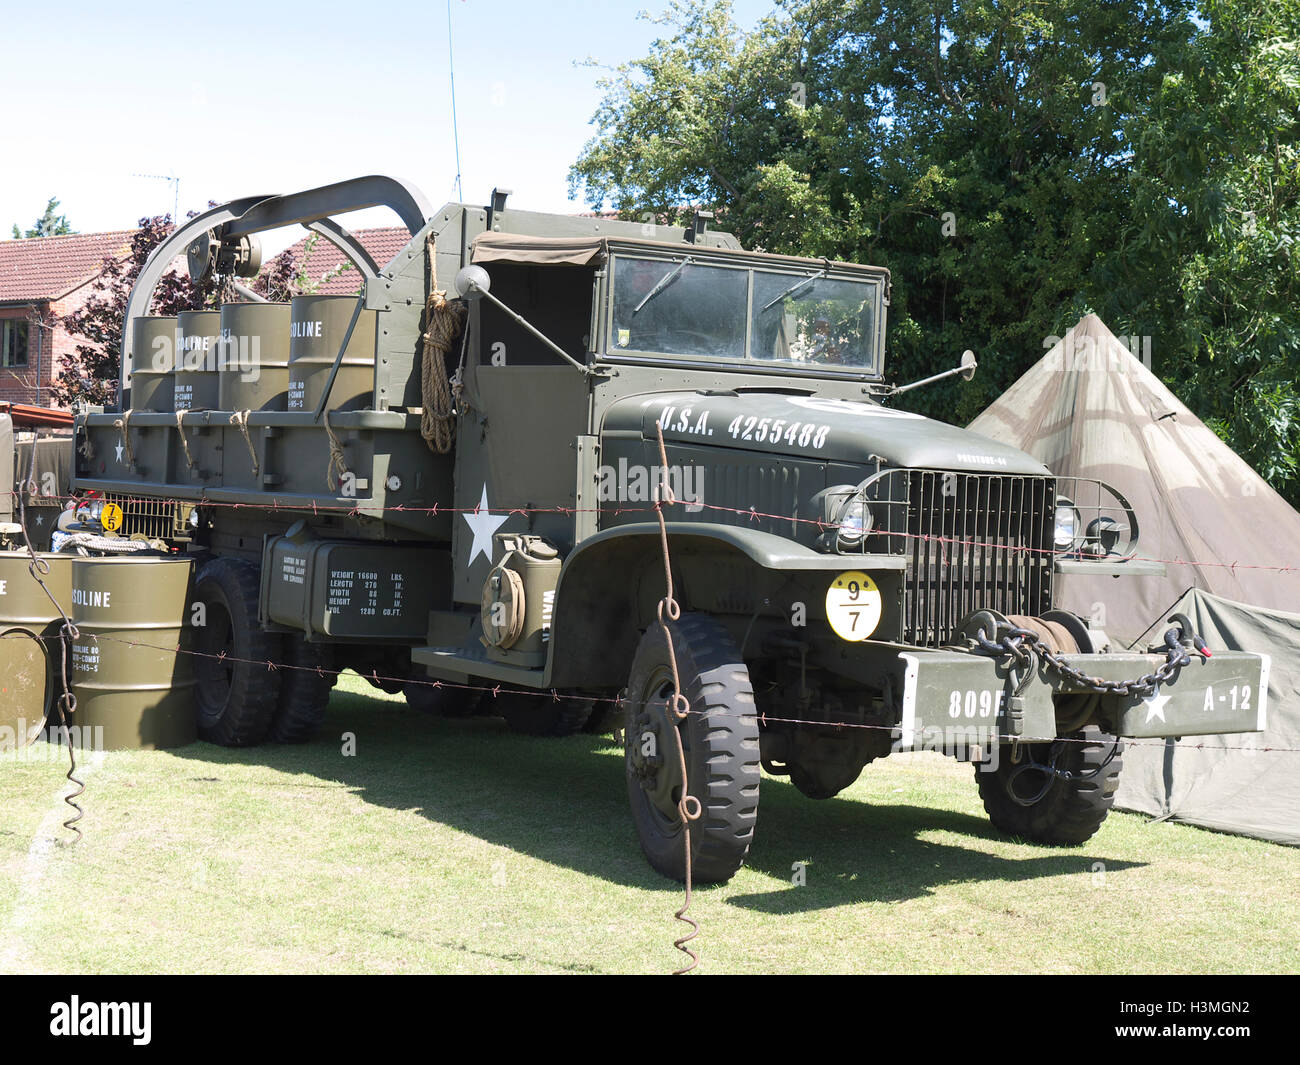 Vintage Wwii Us Army Truck On Display At Baston In The